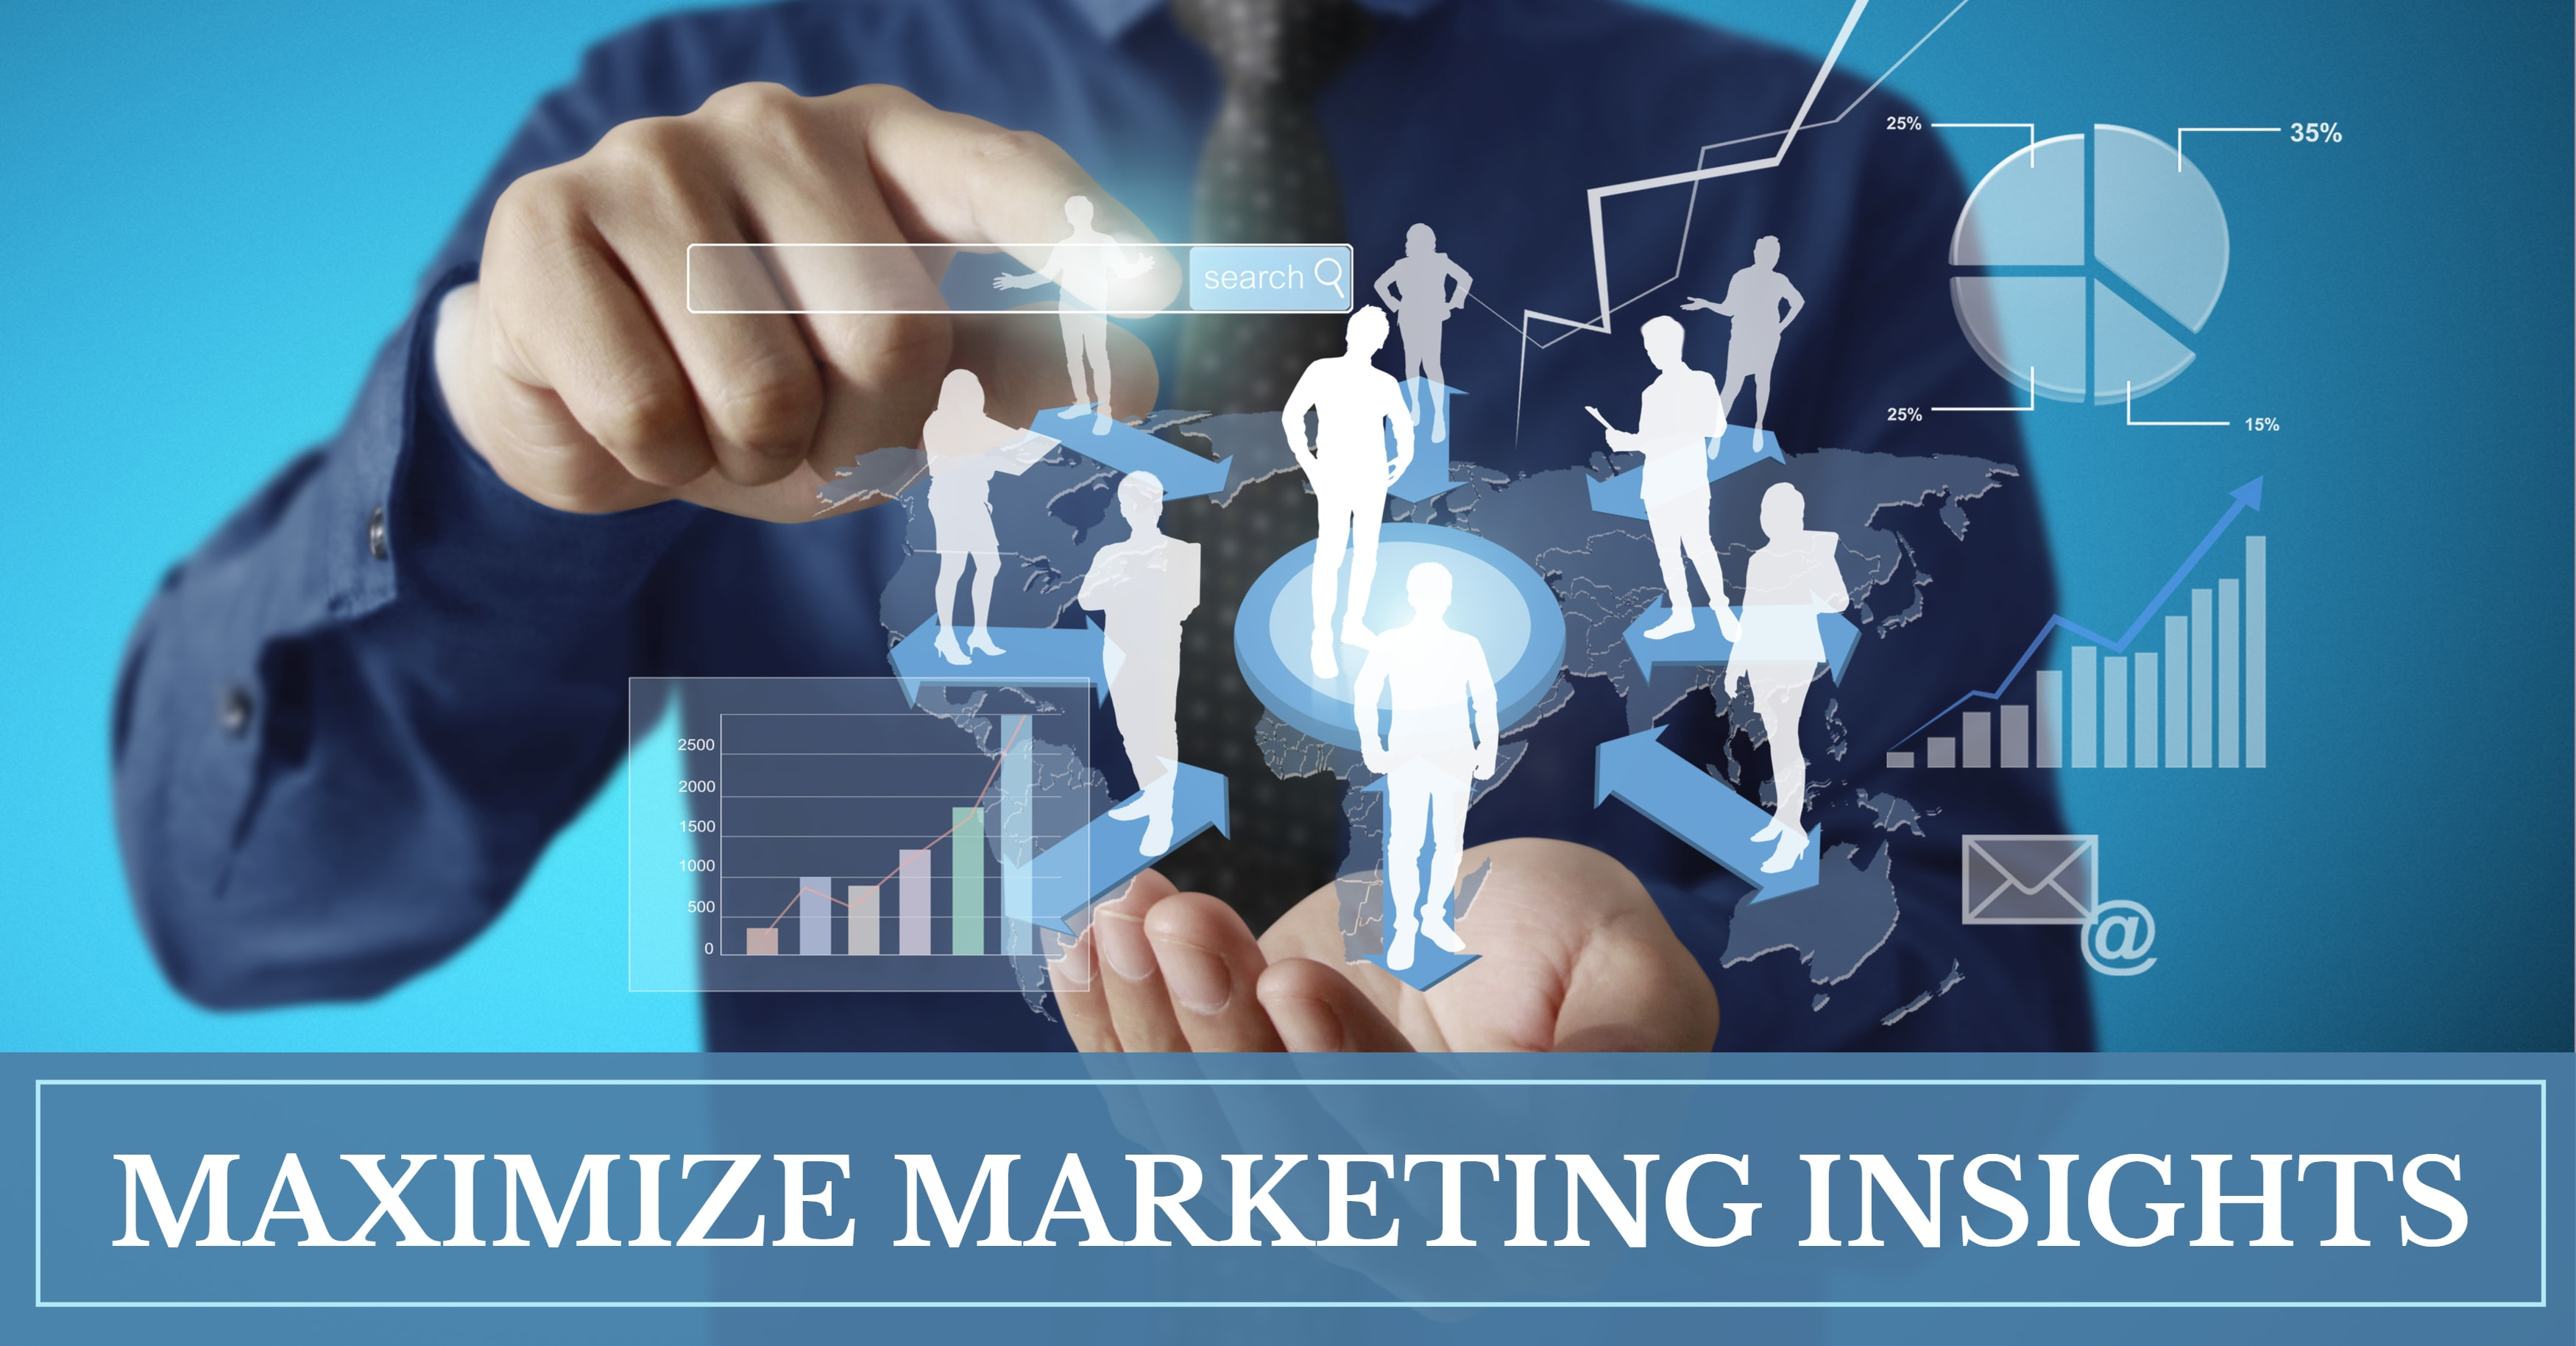 How to Maximize Marketing Insights